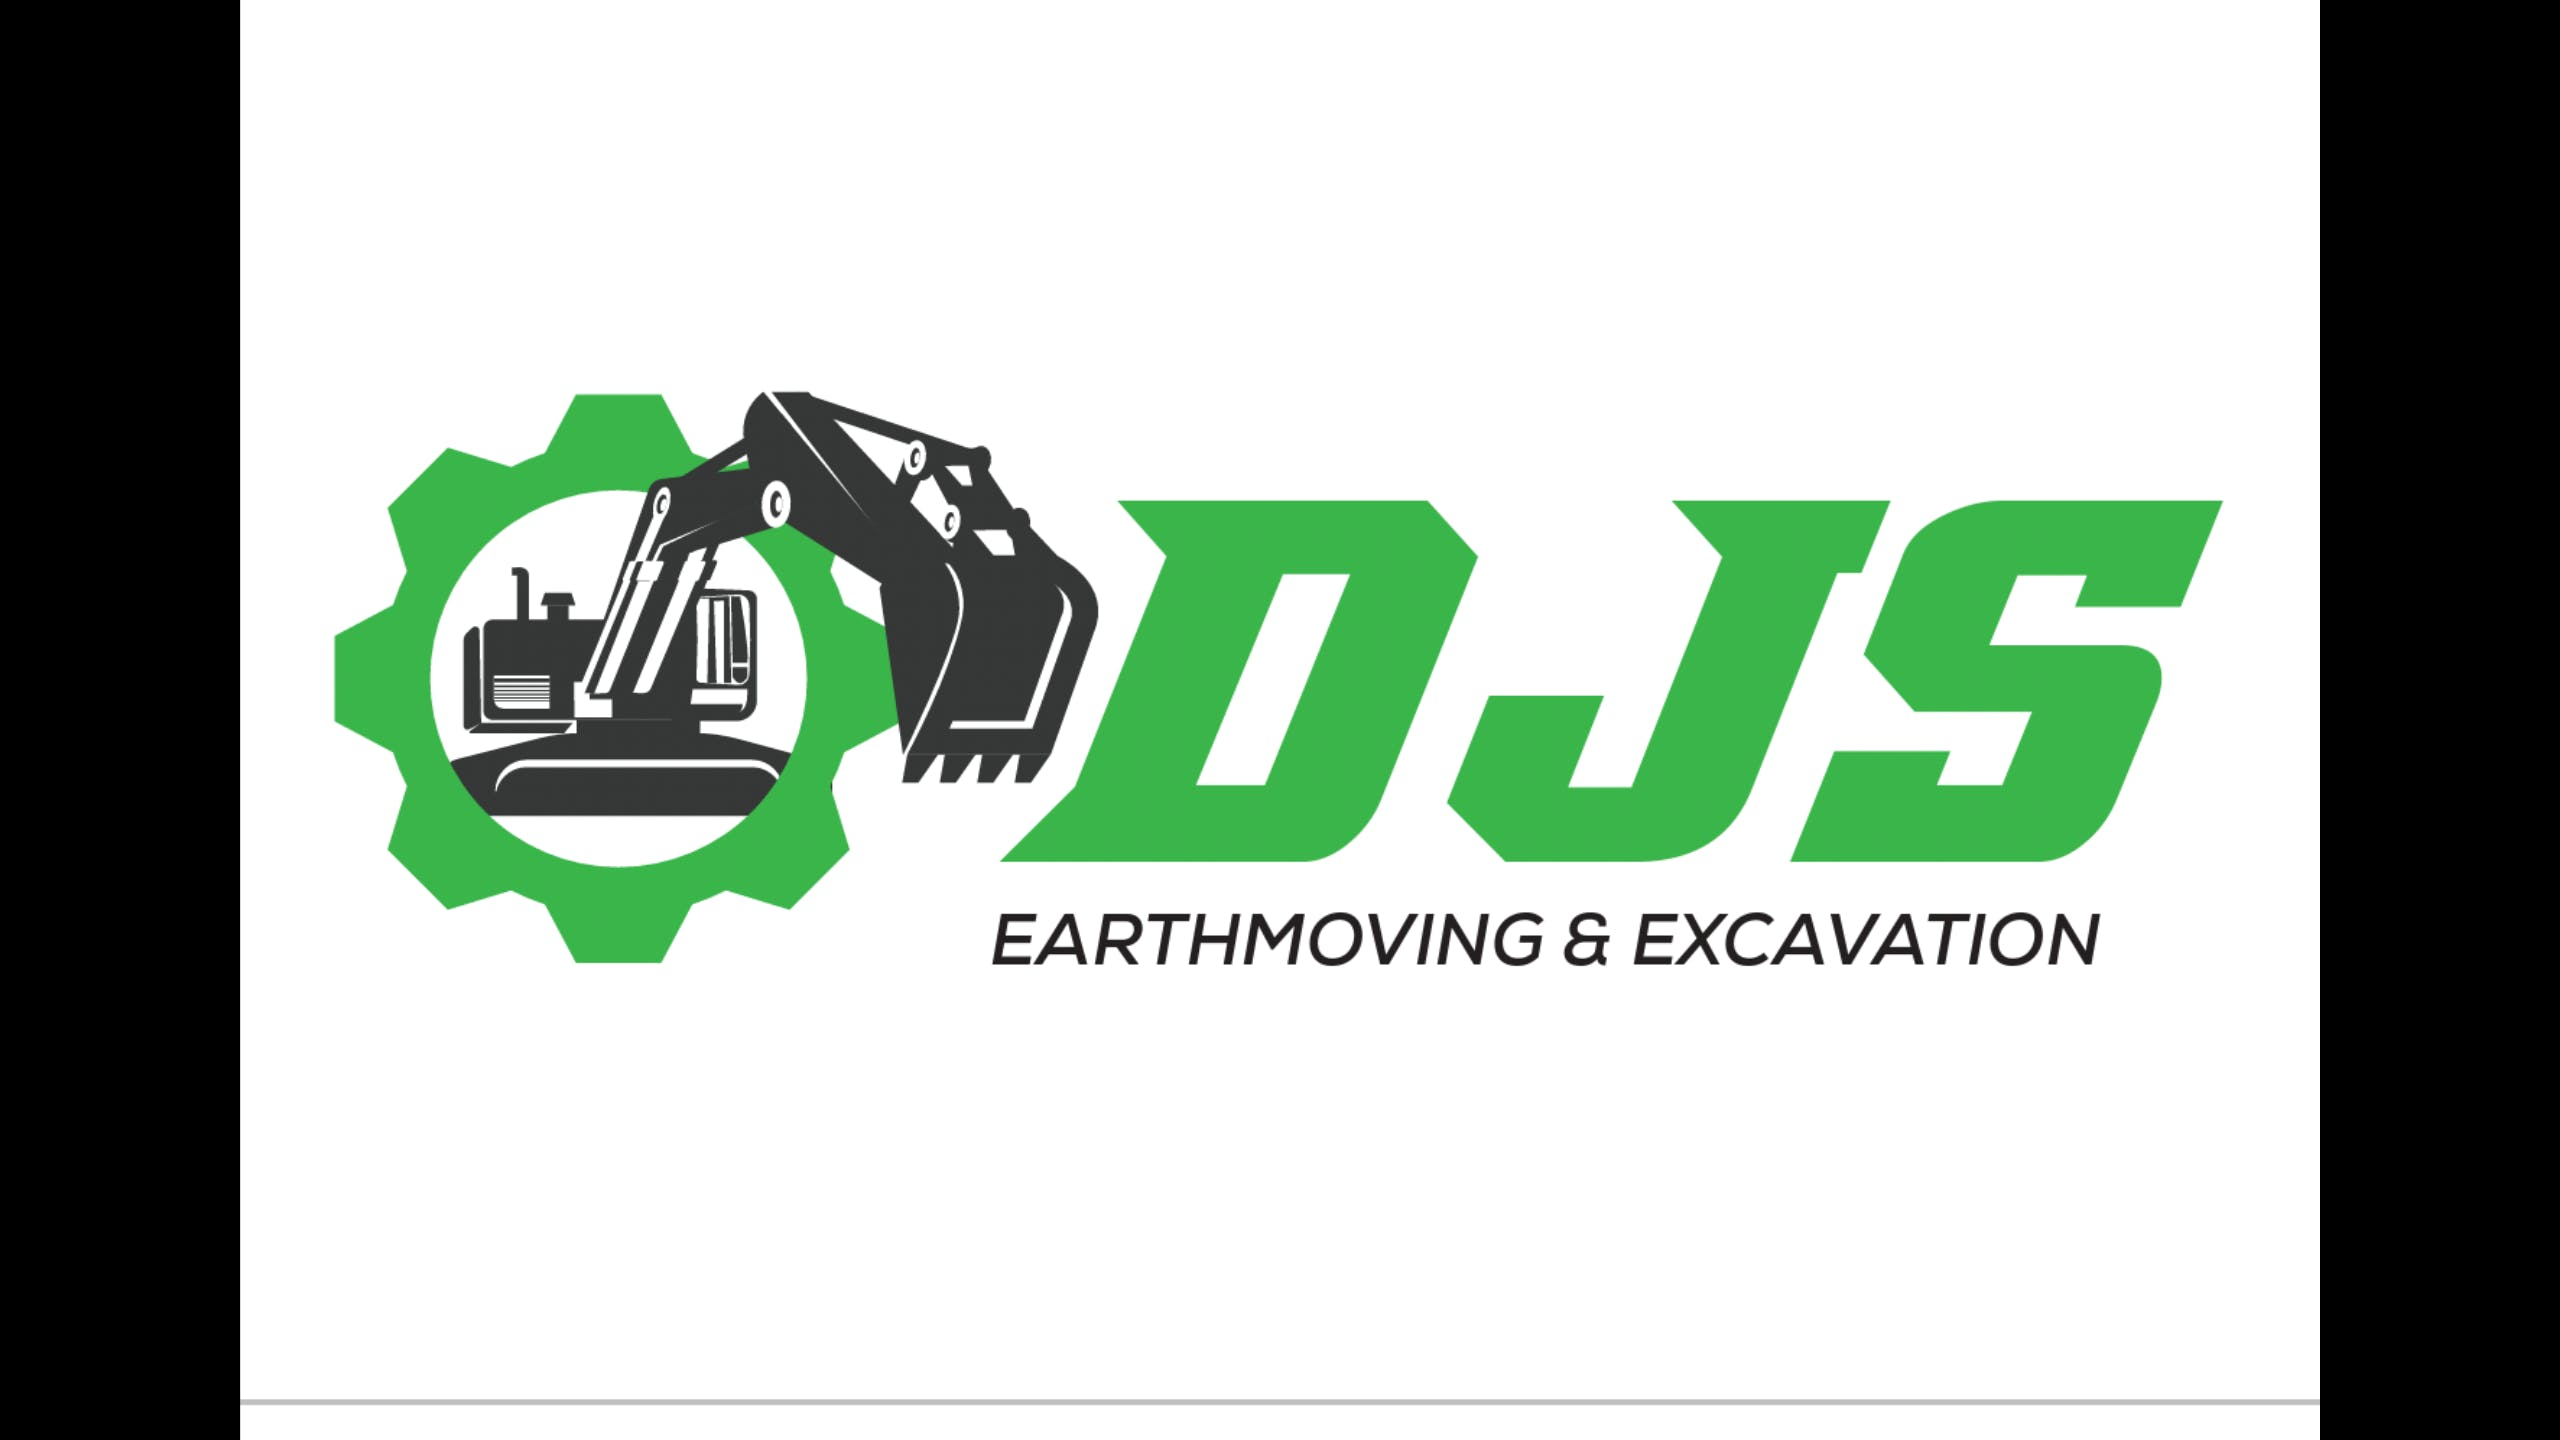 Djs earthmoving & excavation PTY LTD